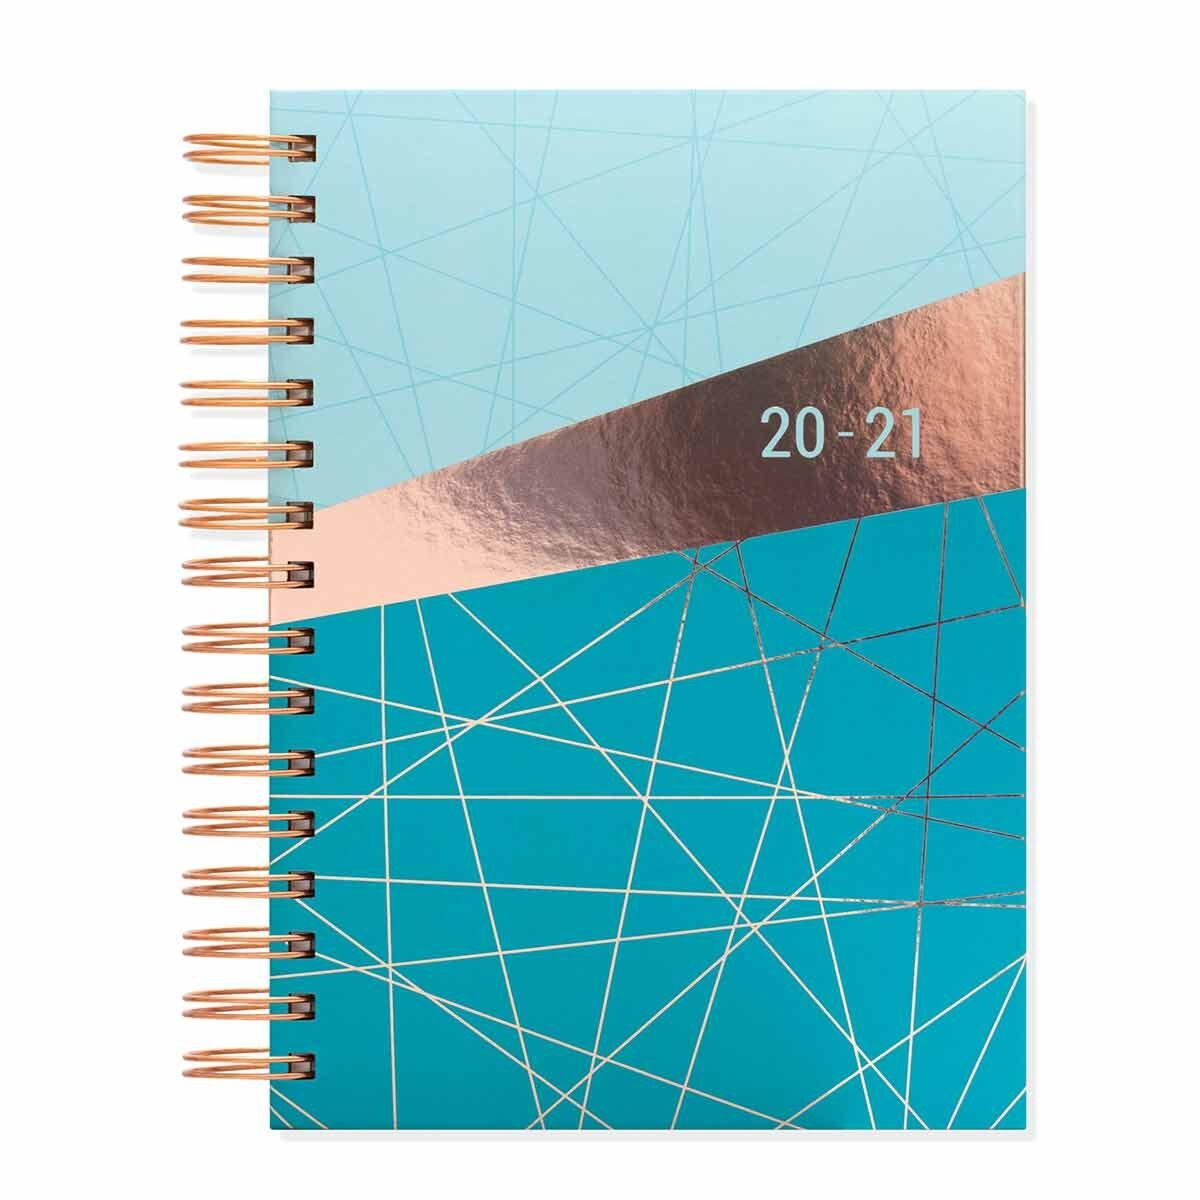 Matilda Myres Geometric Diary Day per Page A5 2020-2021 Teal